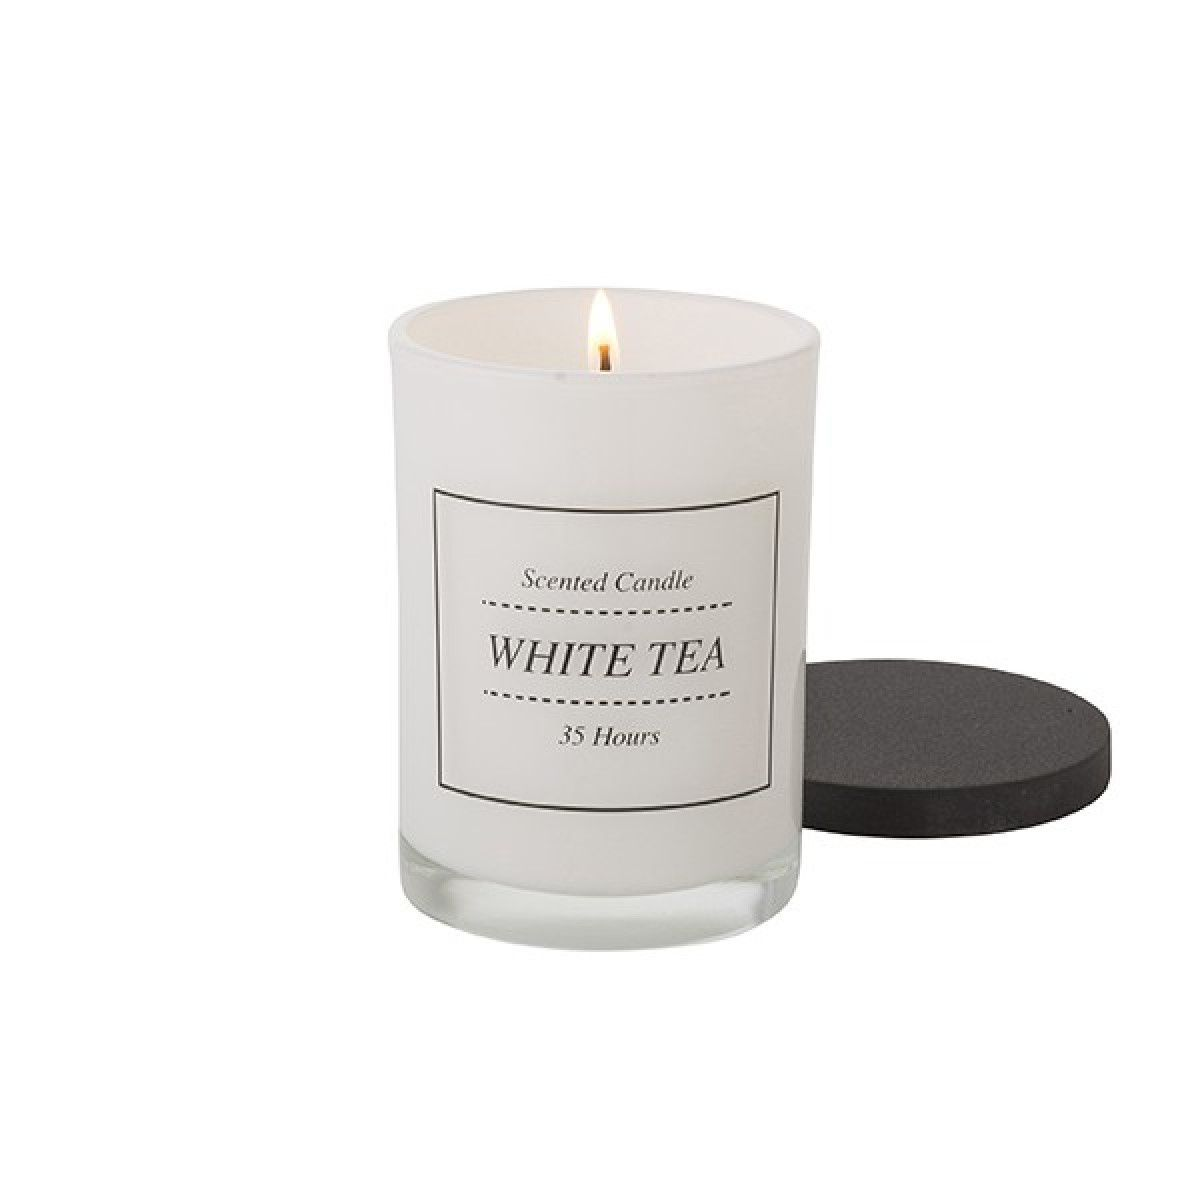 Bahne White Tea Scented Candle